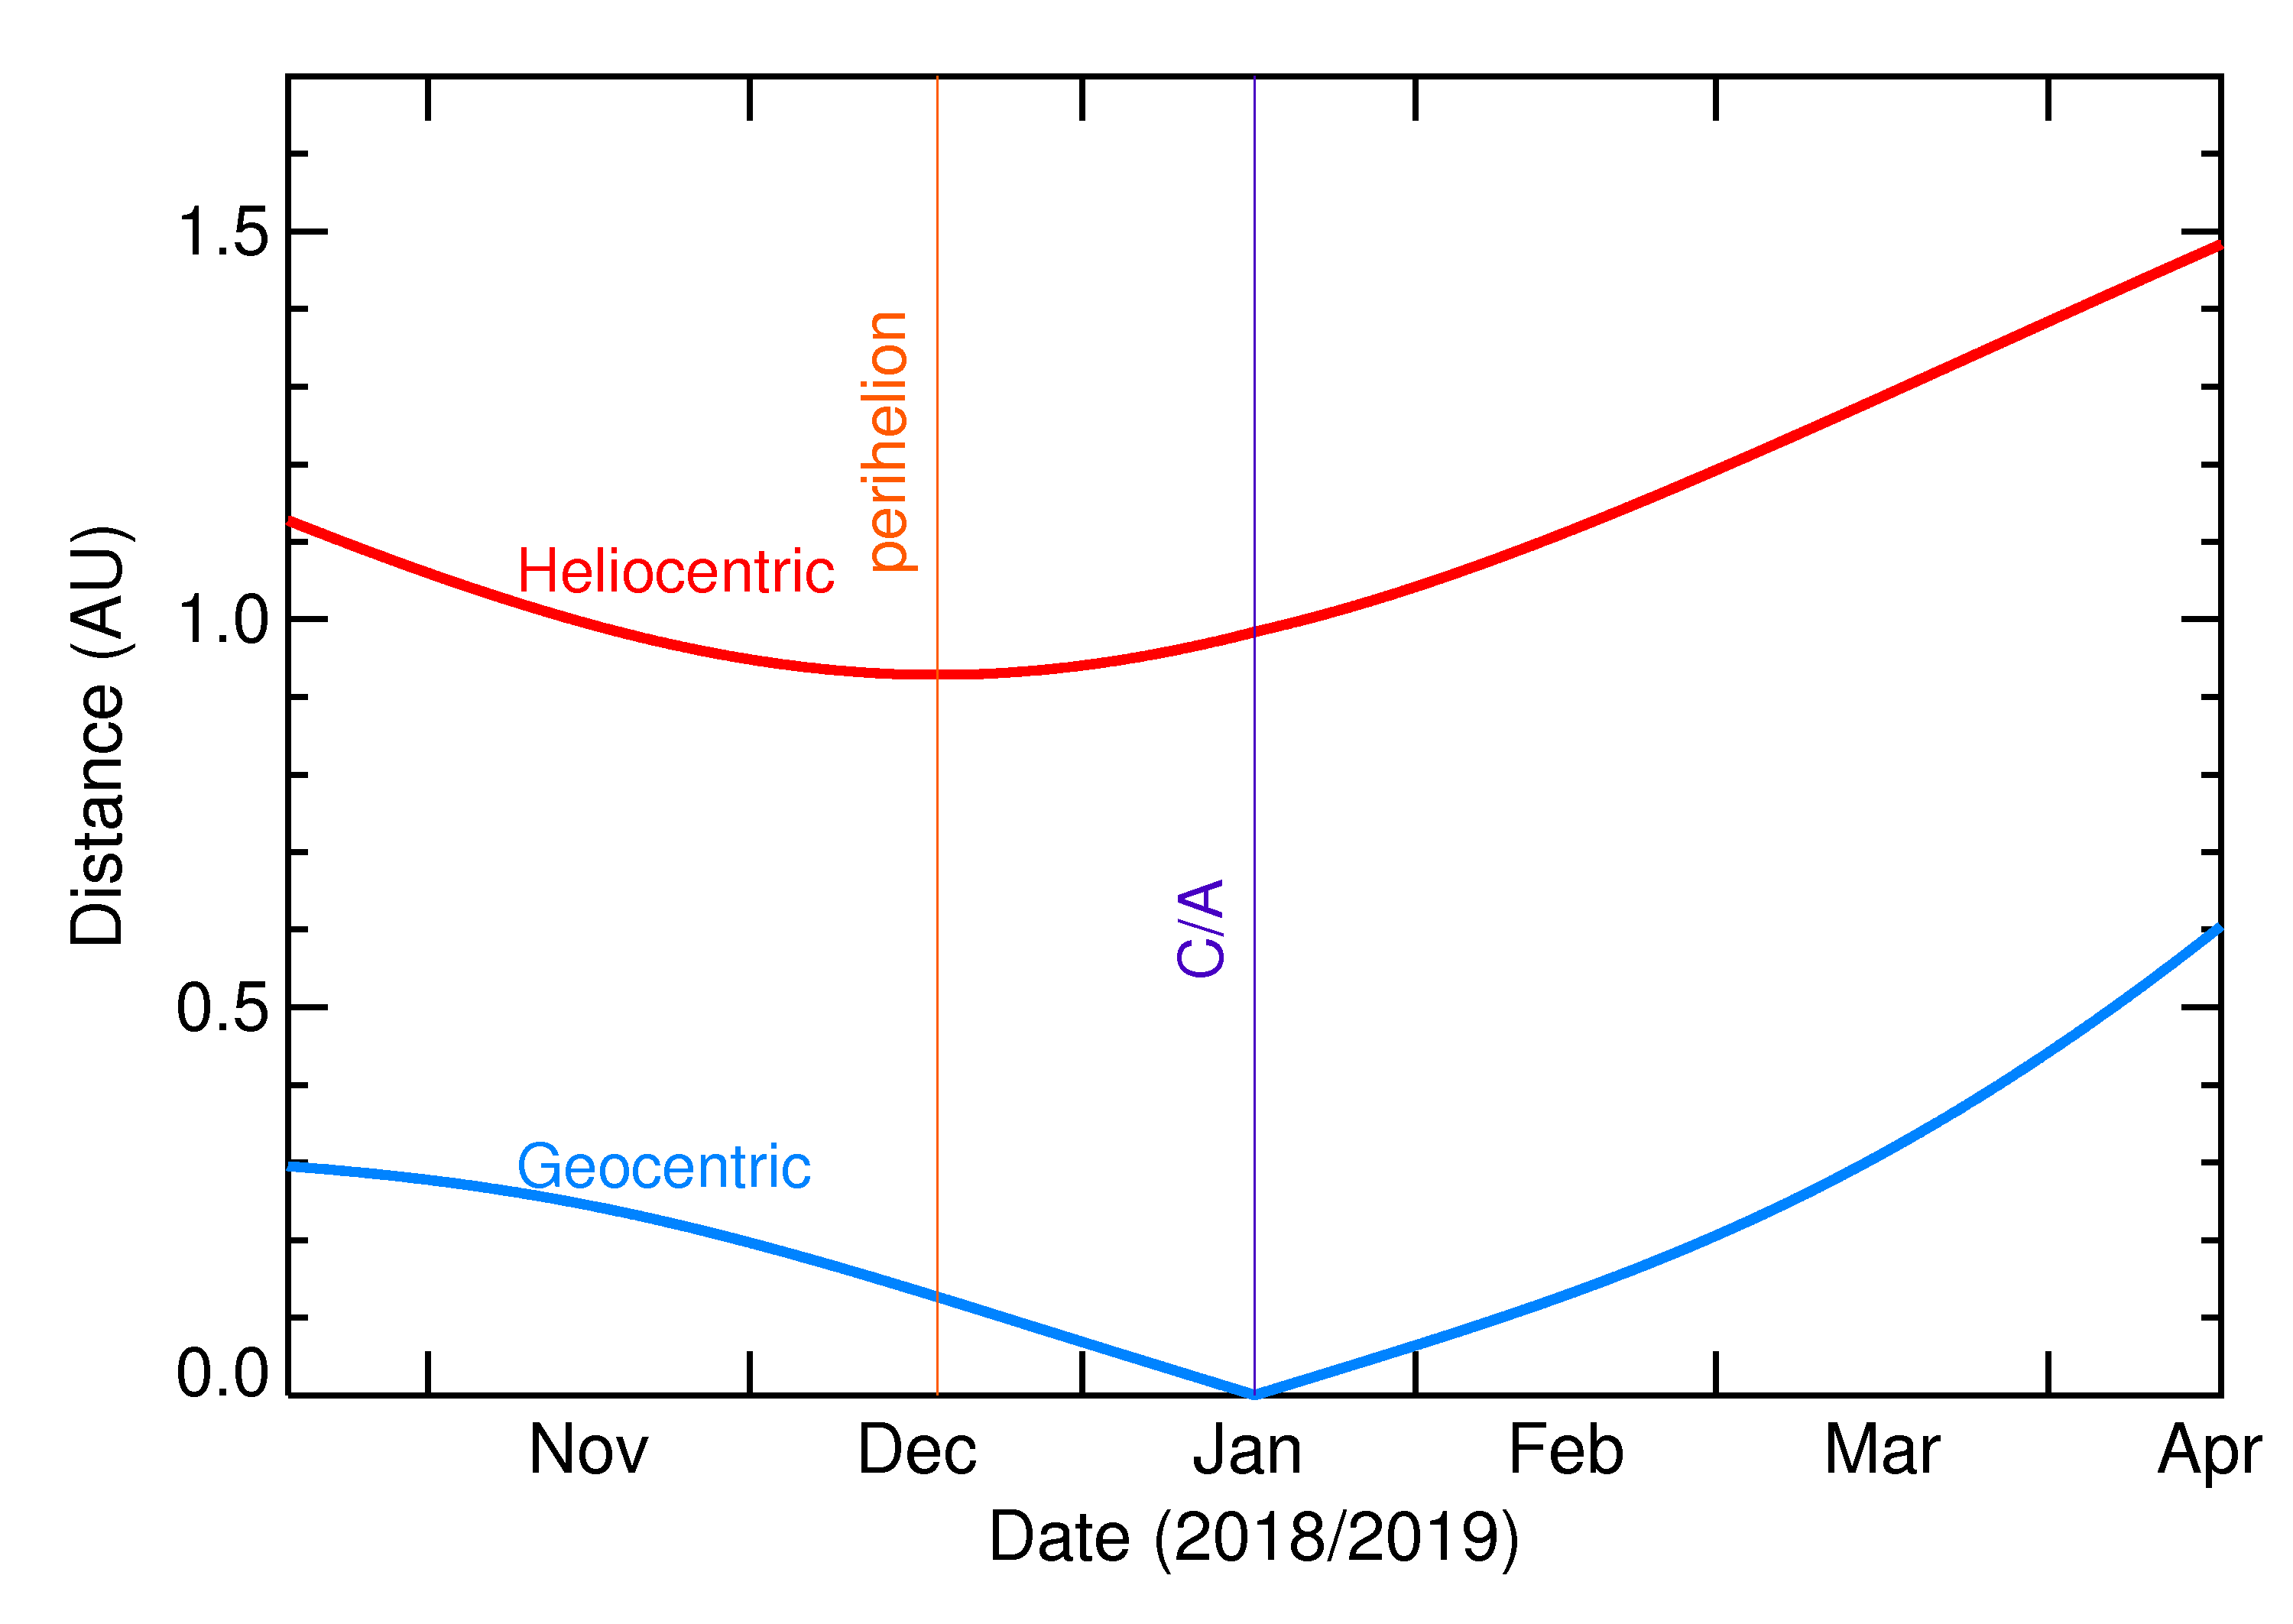 Heliocentric and Geocentric Distances of 2019 BO in the months around closest approach